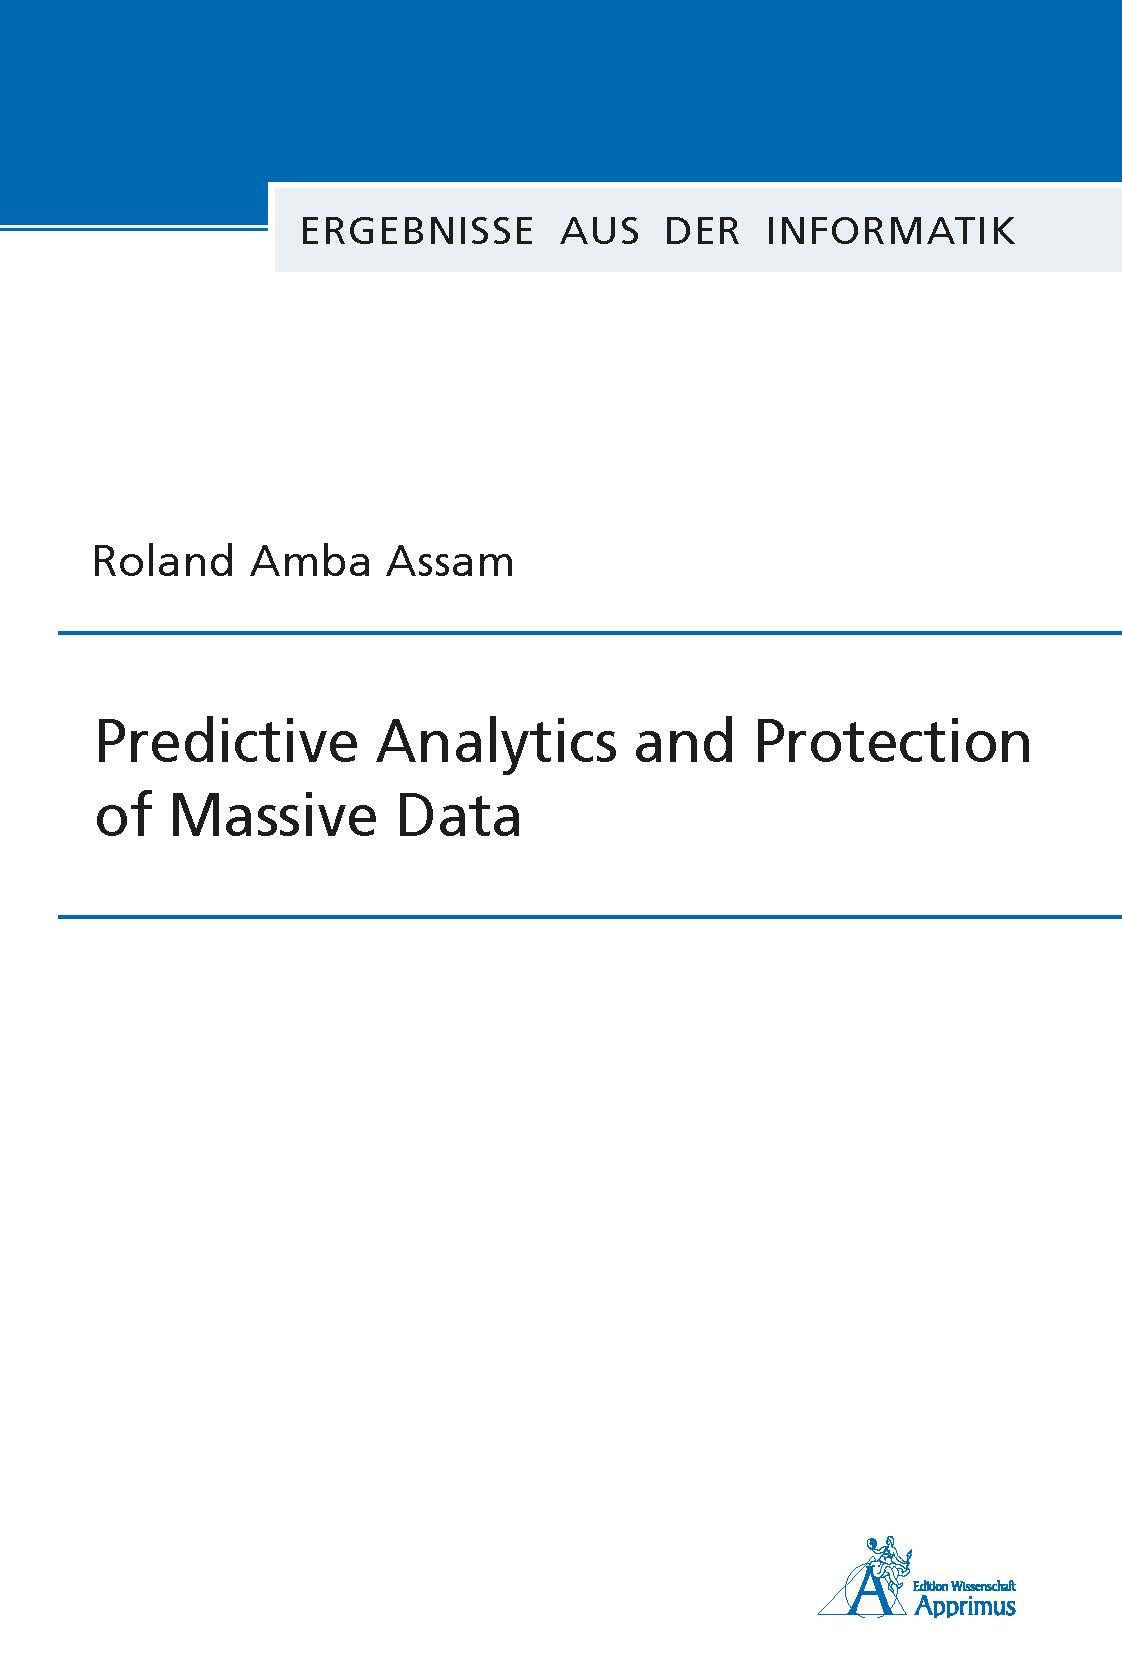 Predictive Analytics and Protection of Massive Data